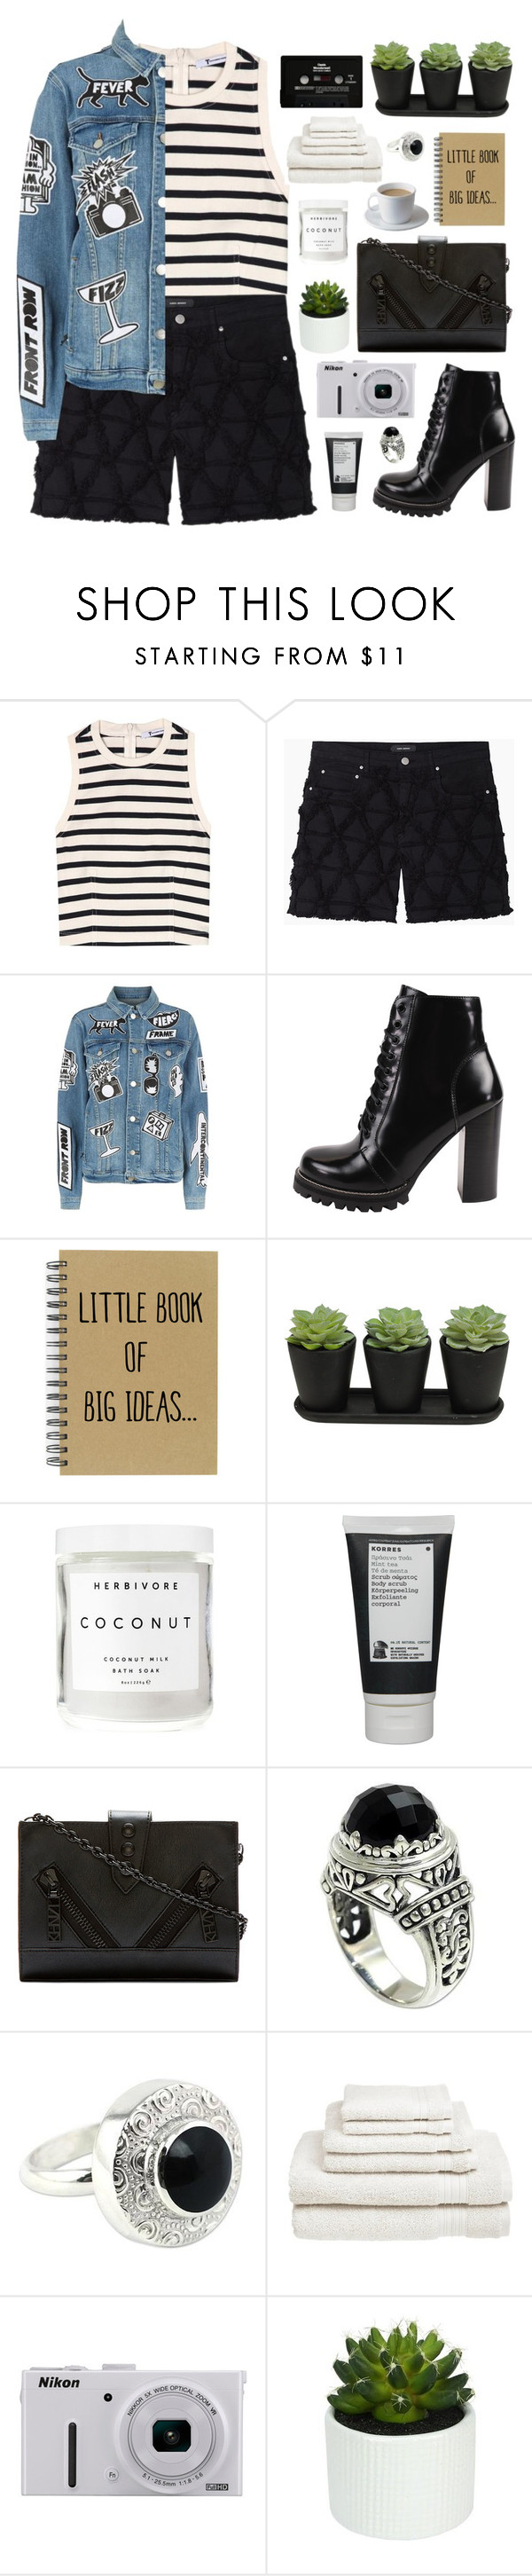 """""""Sin título #2594"""" by liliblue ❤ liked on Polyvore featuring T By Alexander Wang, Isabel Marant, Frame, Jeffrey Campbell, Herbivore, Korres, Kenzo, NOVICA, CASSETTE and Welspun"""